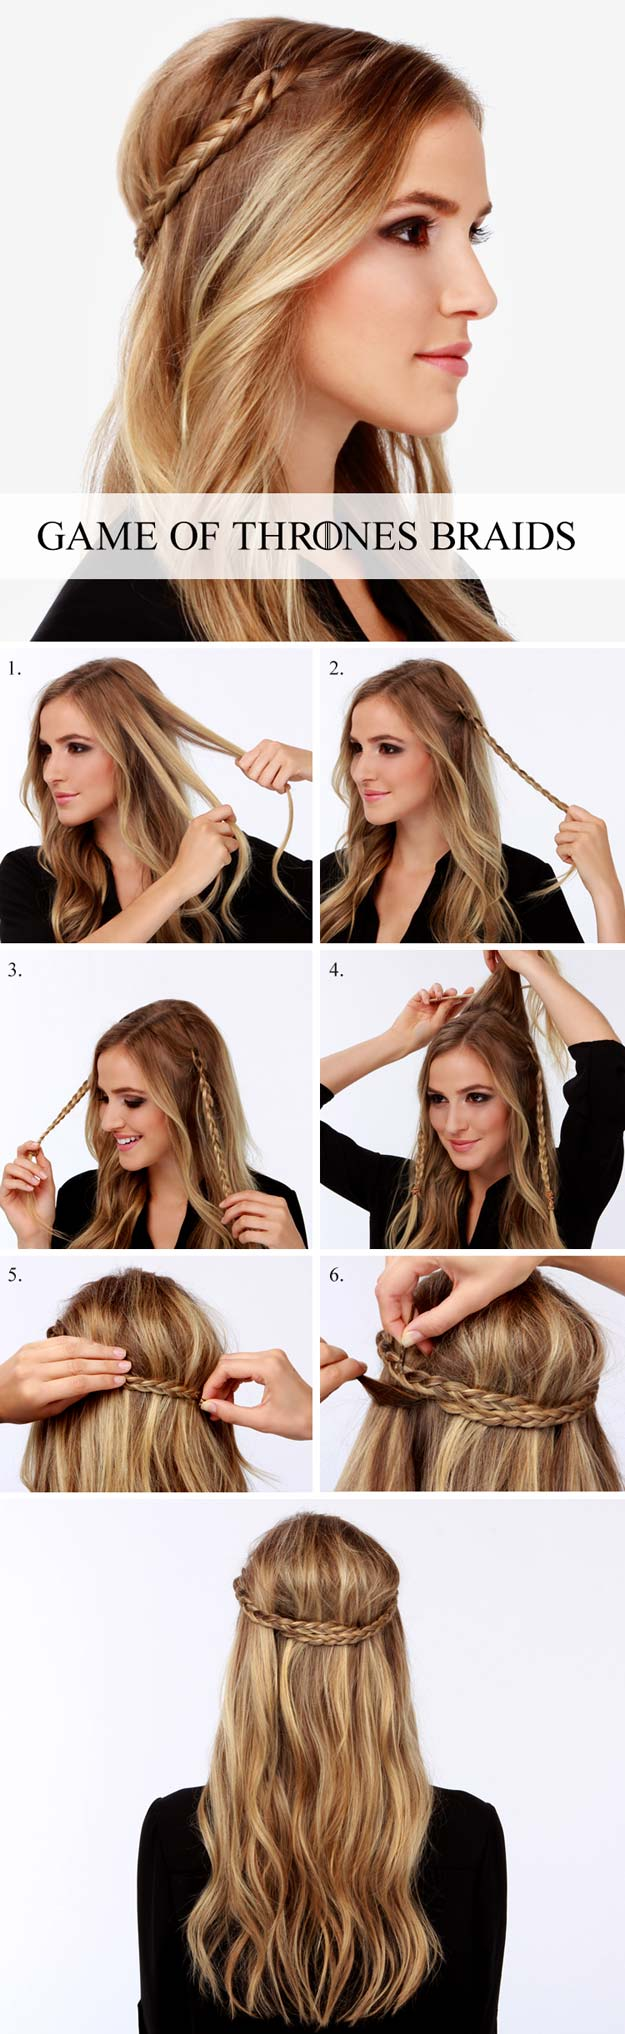 Best Hair Braiding Tutorials - Game of Thrones Braid Tutorial! - Easy Step by Step Tutorials for Braids - How To Braid Fishtail, French Braids, Flower Crown, Side Braids, Cornrows, Updos - Cool Braided Hairstyles for Girls, Teens and Women - School, Day and Evening, Boho, Casual and Formal Looks #hairstyles #braiding #braidingtutorials #diyhair